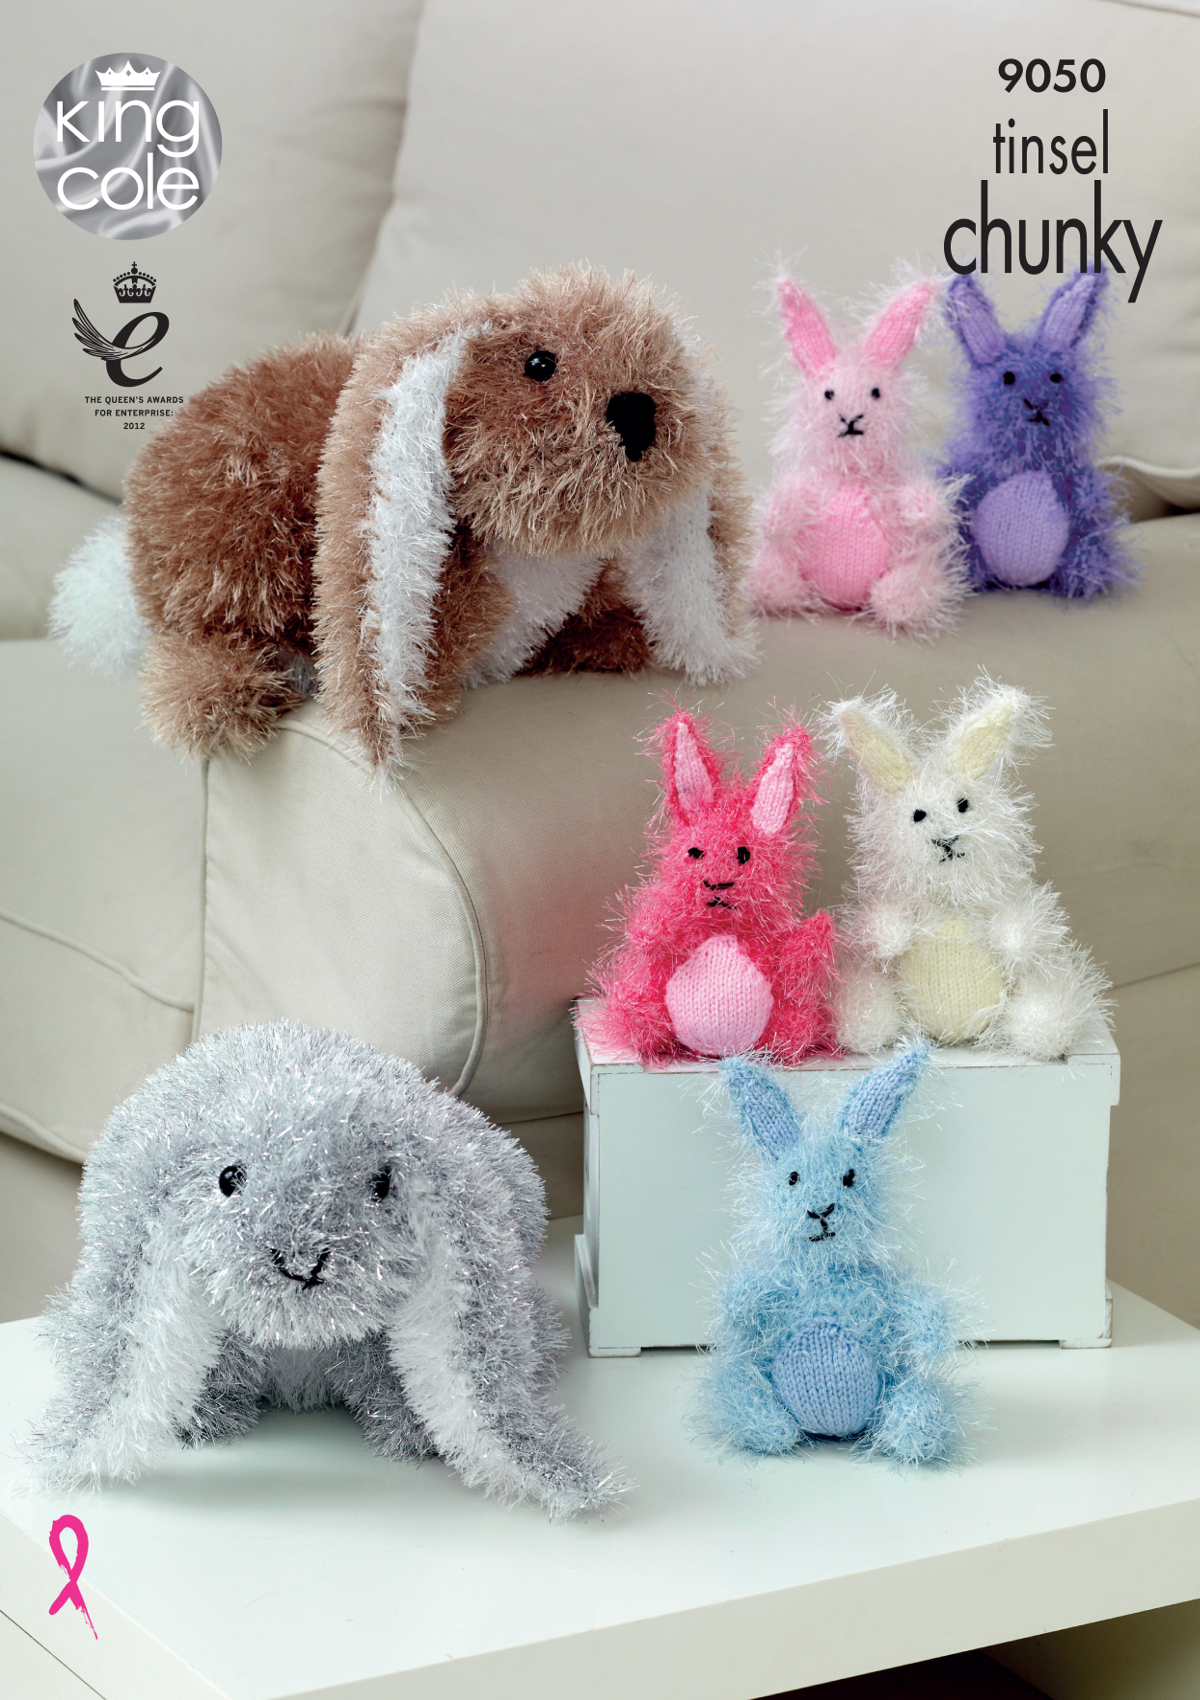 Details about Tinsel Chunky Knitting Pattern Small or Large Bunny Rabbit Toys King Cole 9050